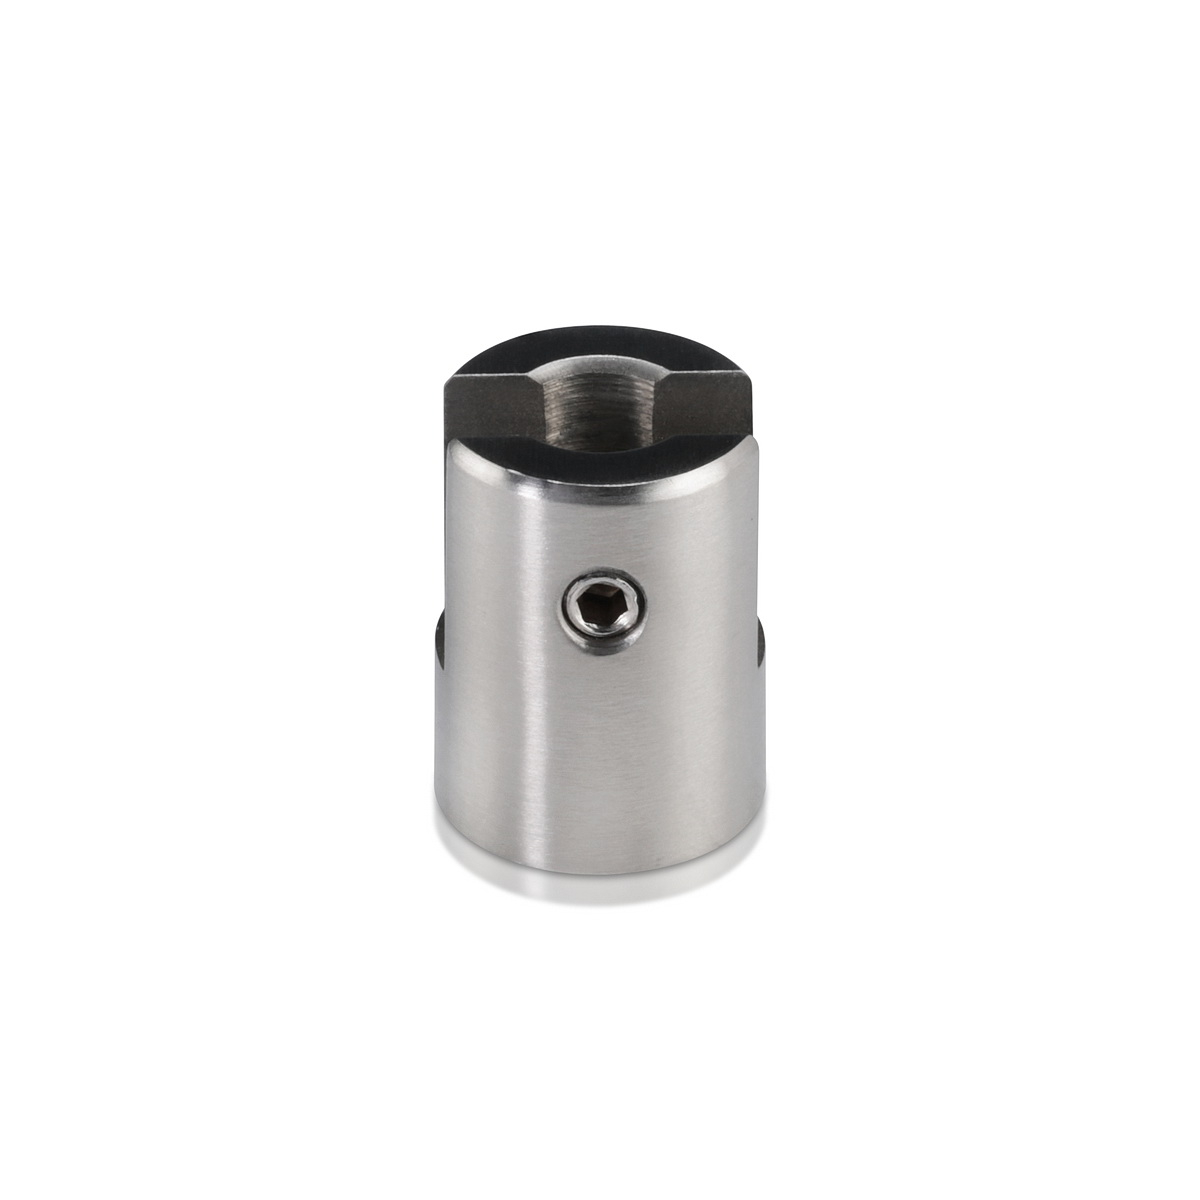 Stainless Steel Satin Brushed Finish Projecting Gripper, Holds Up To 1/4'' Material